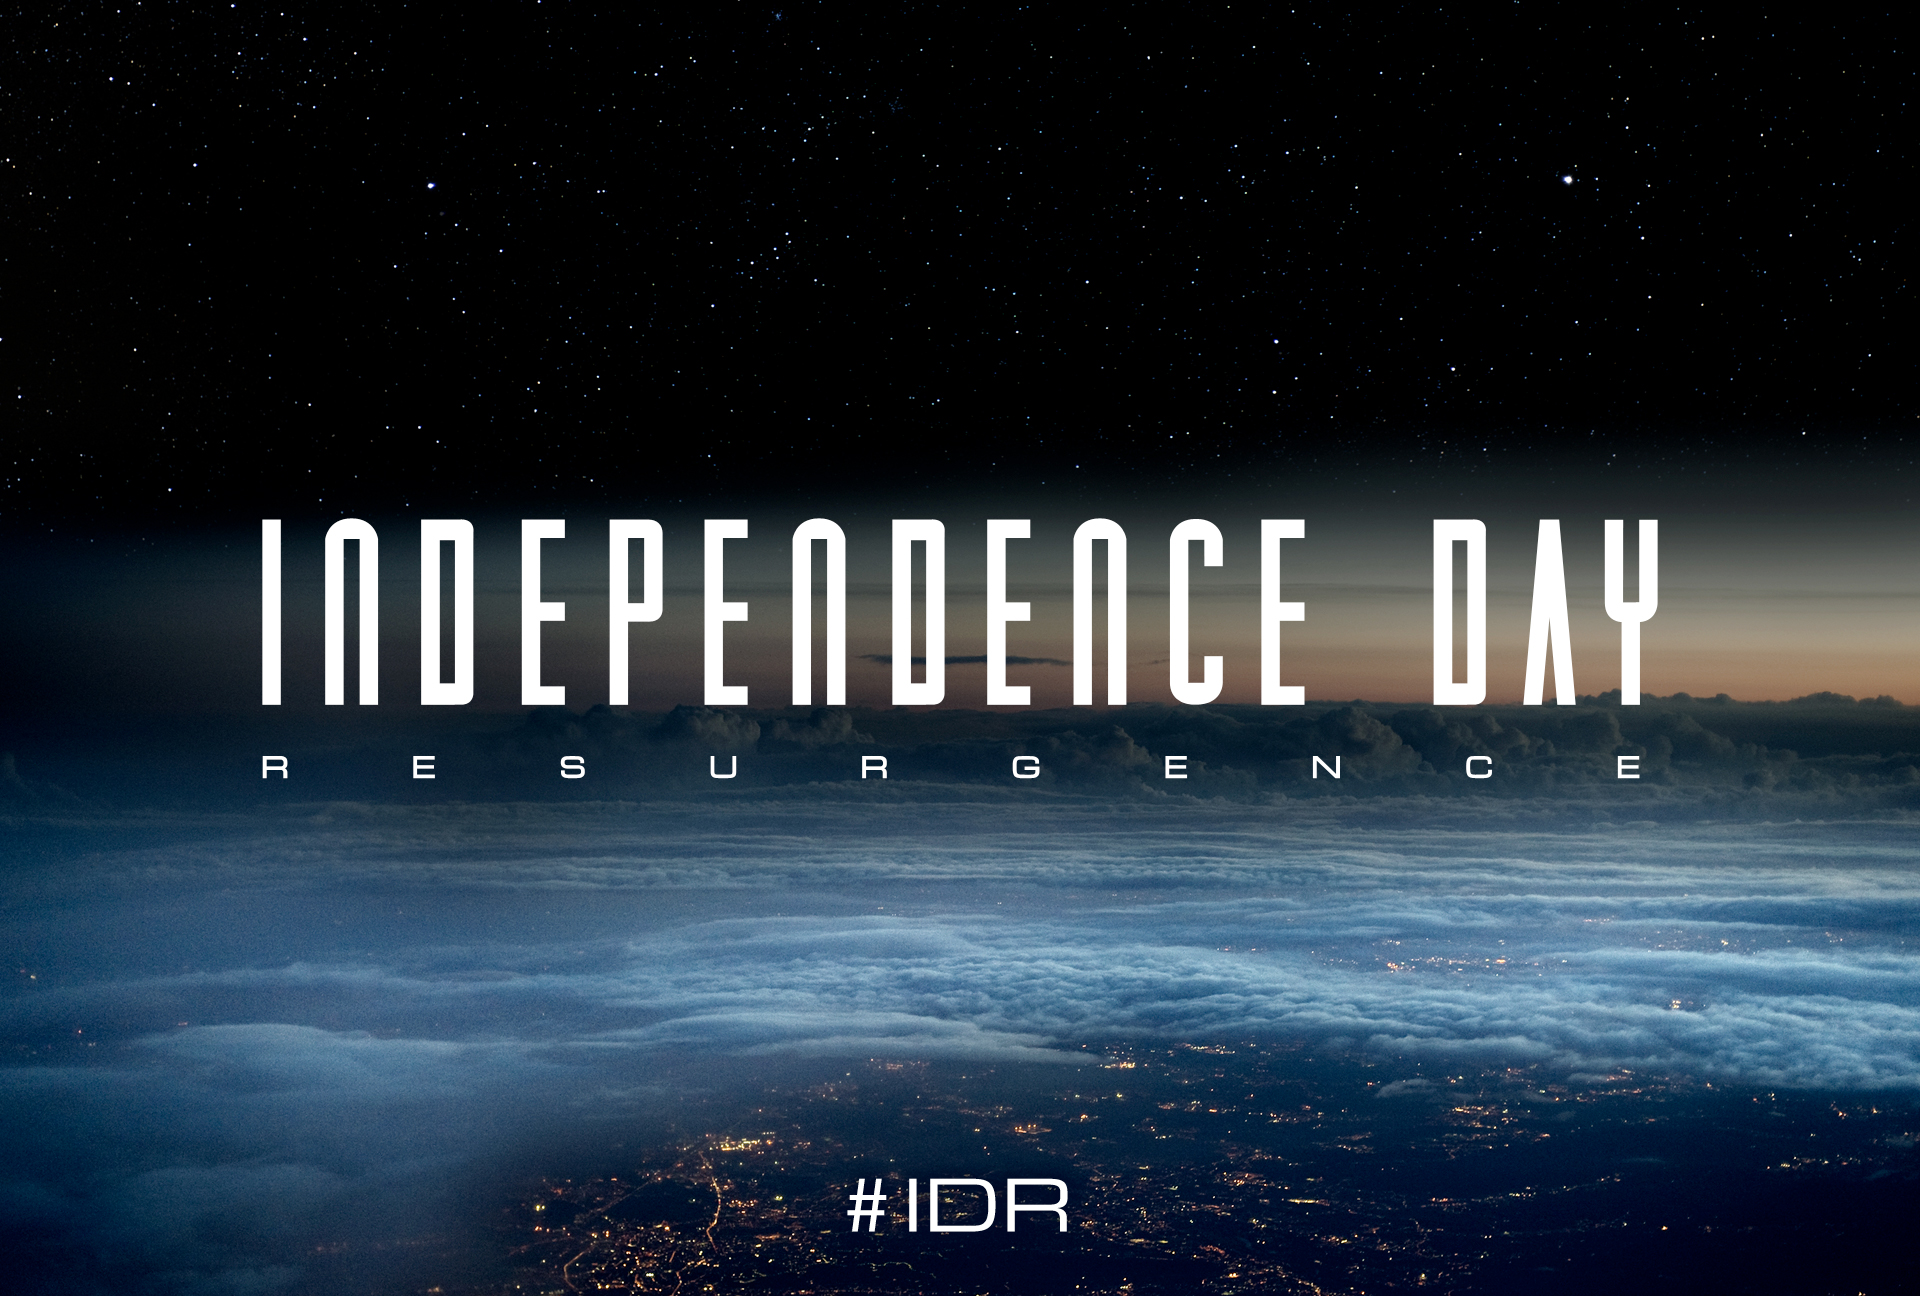 independence-day-2-resurgence-title-treatment.jpg